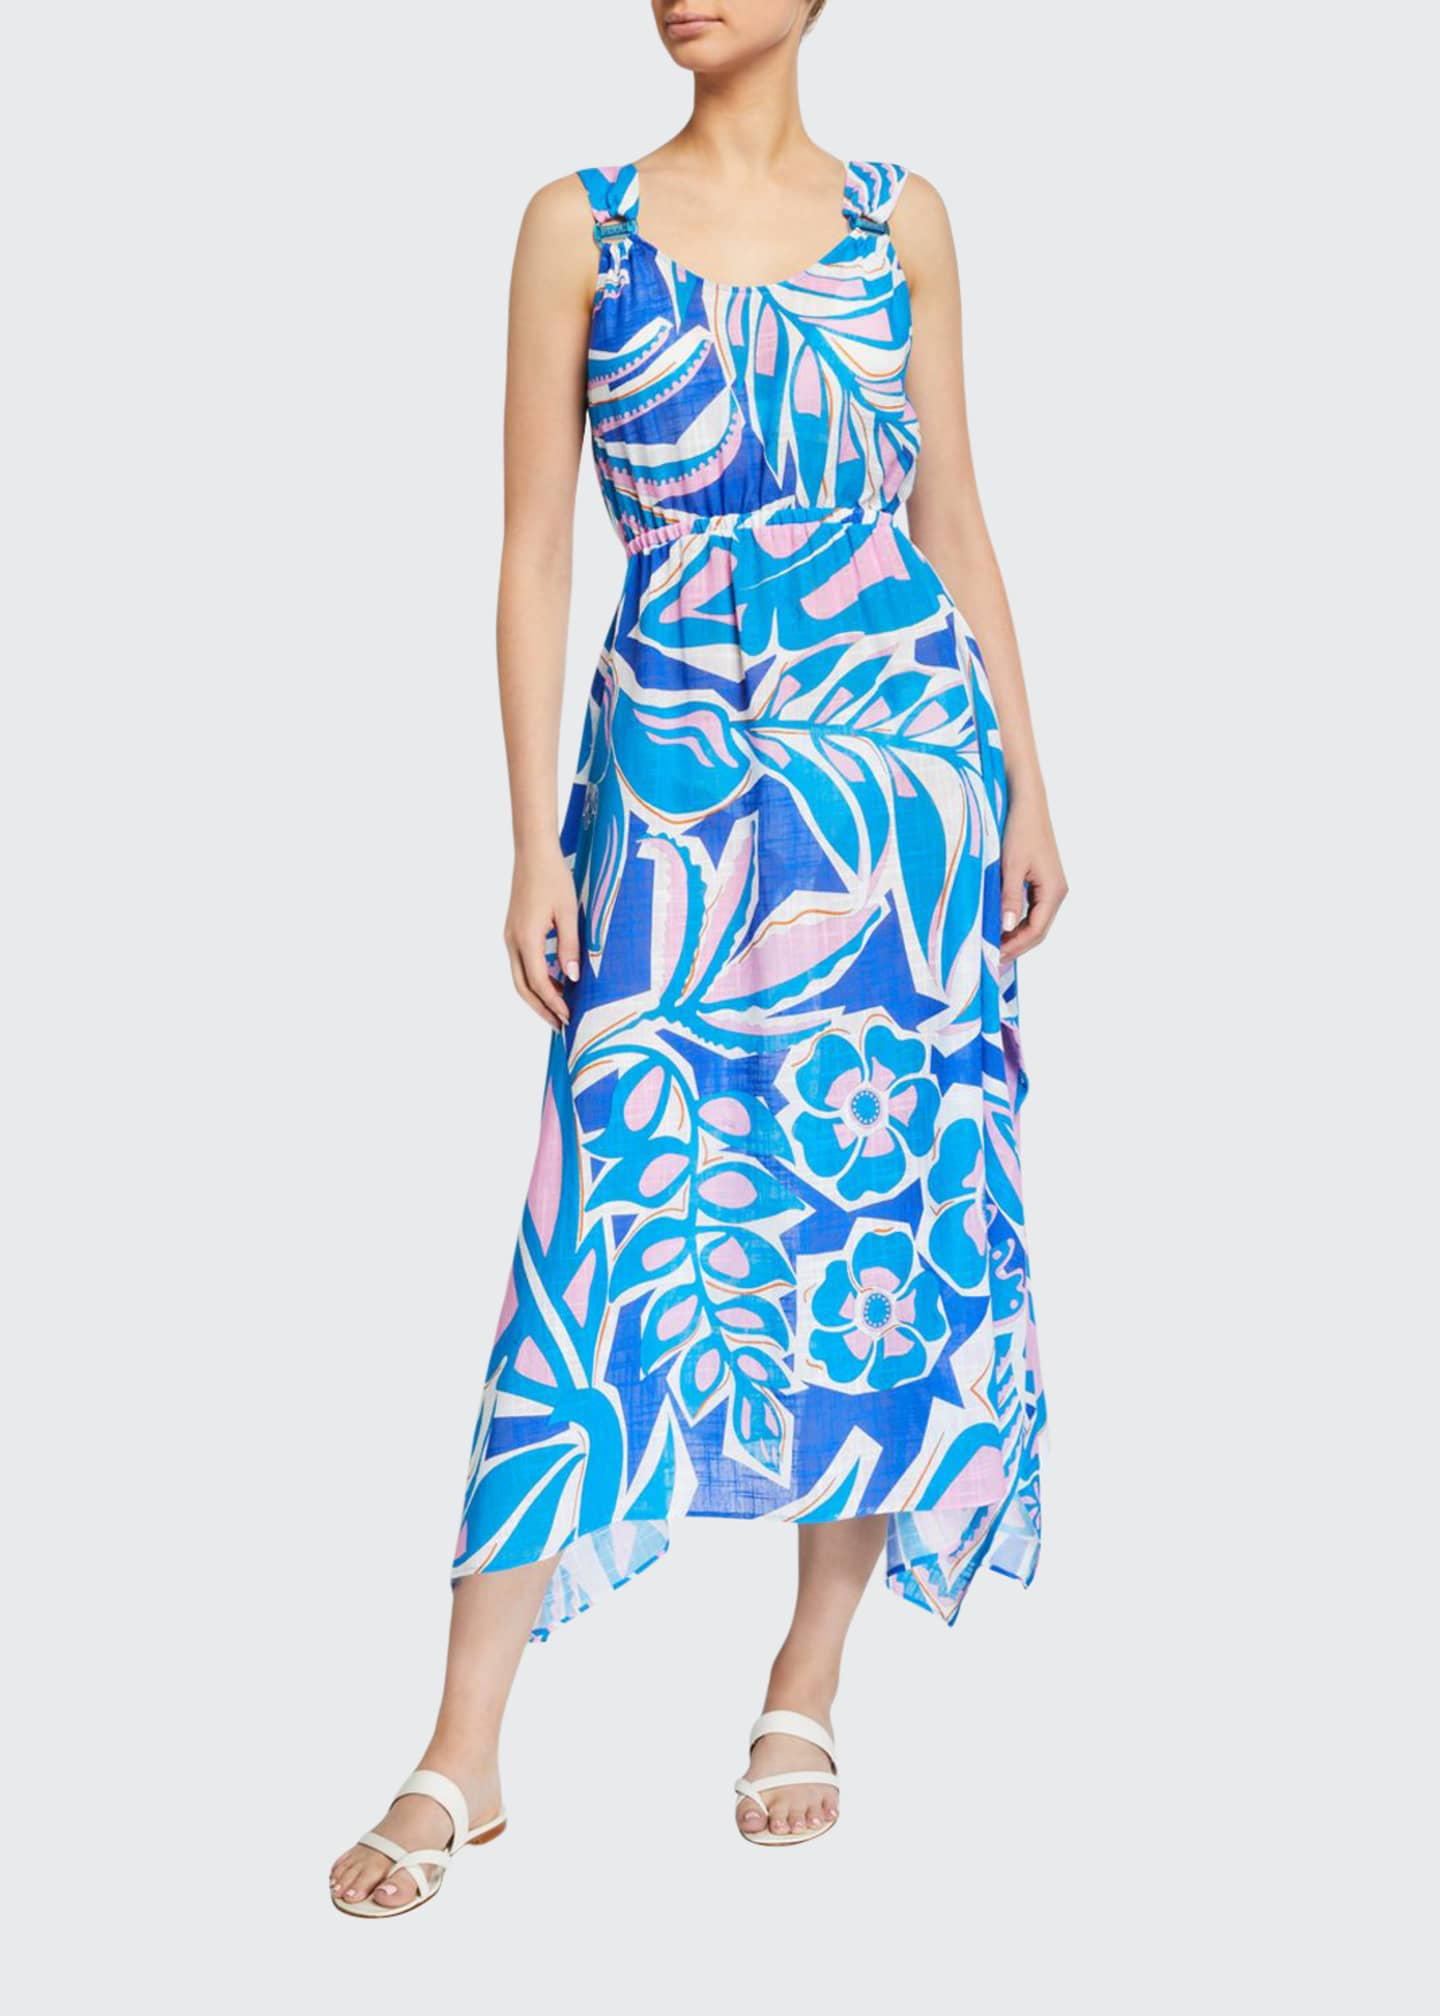 Emilio Pucci Sleeveless Long Dress